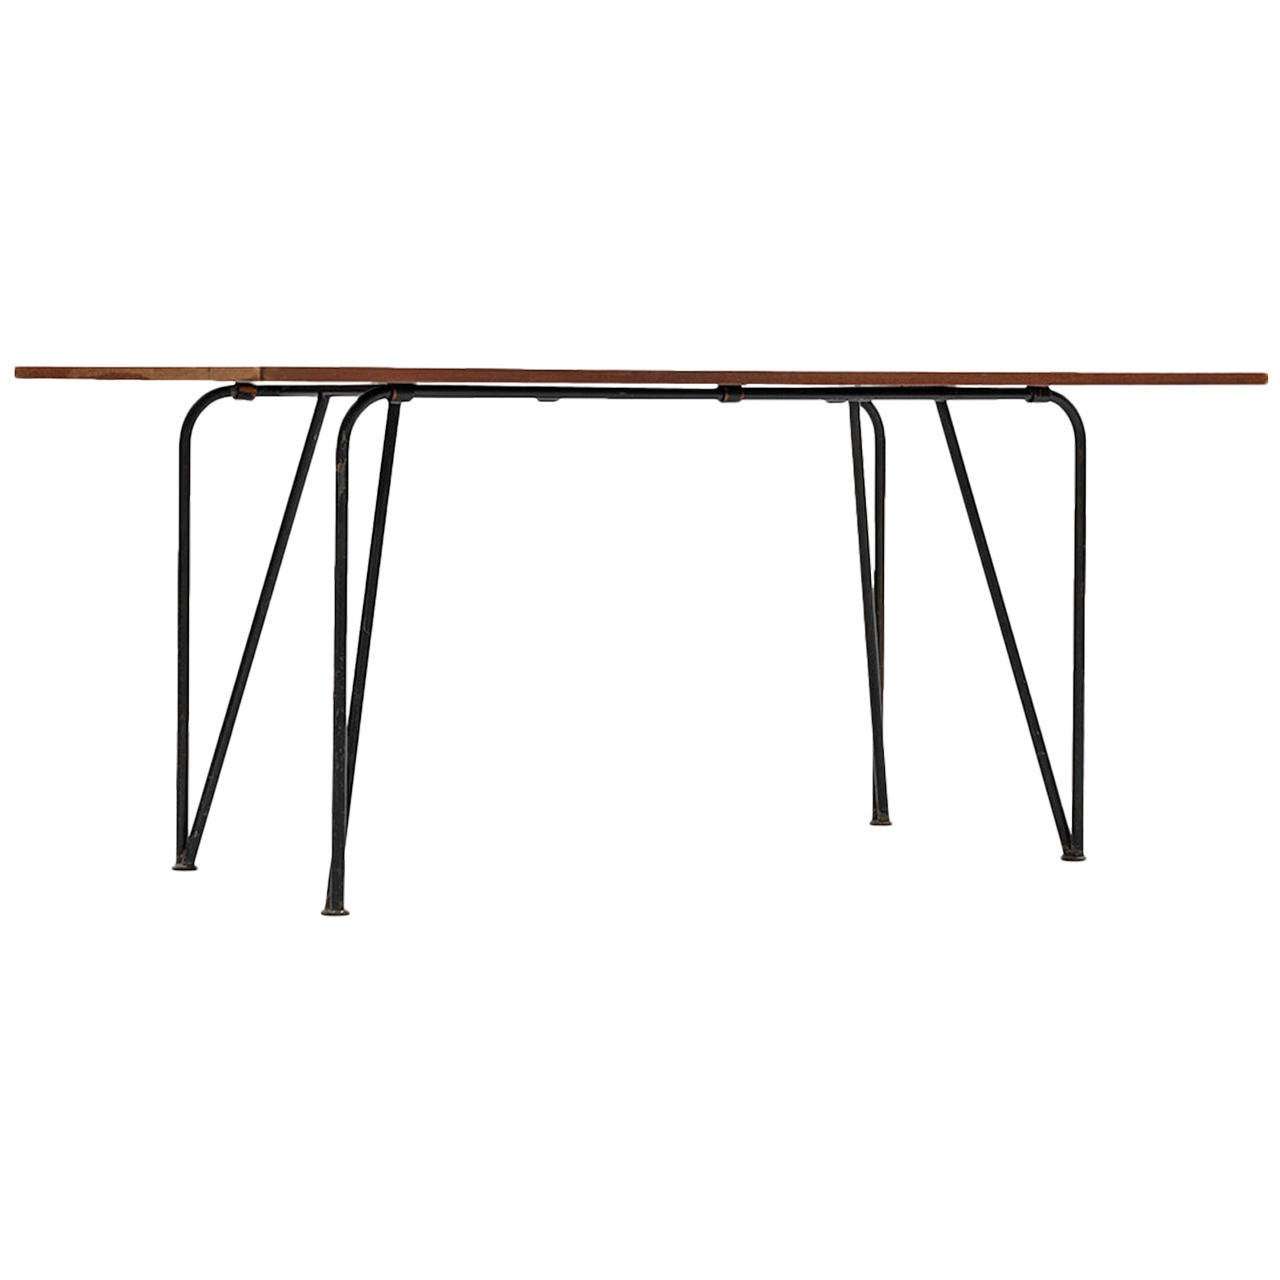 Mid century dining table / desk in black lacquered steel and teak top